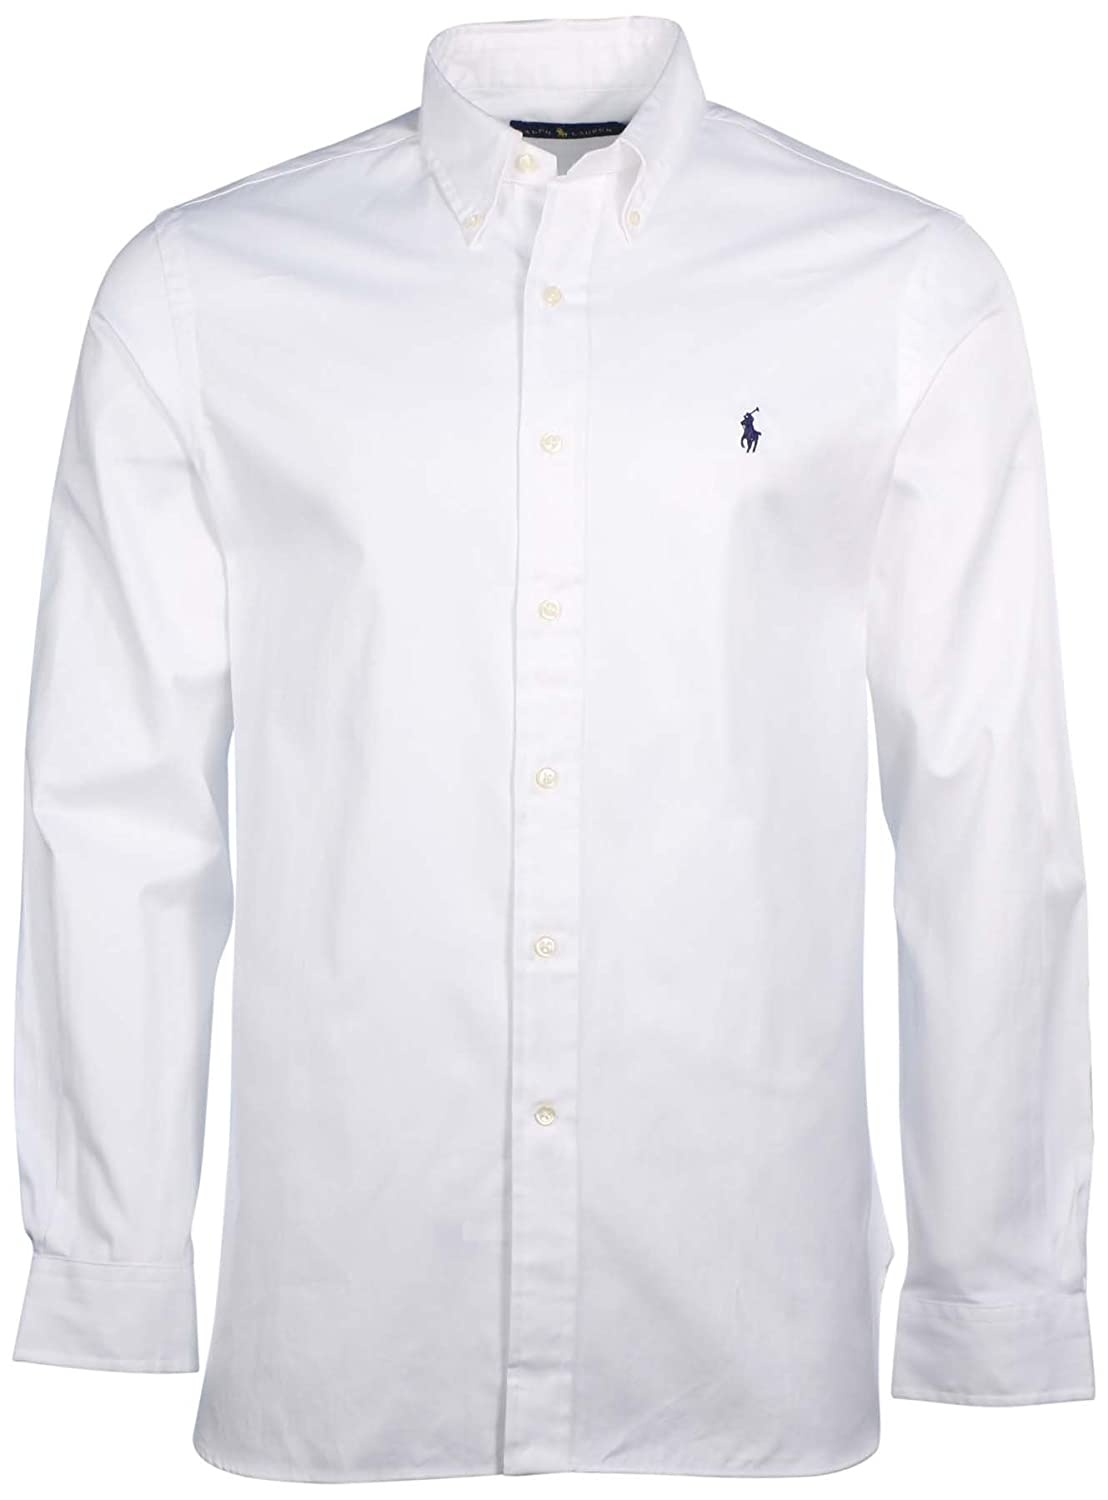 all white polo ralph lauren shirt